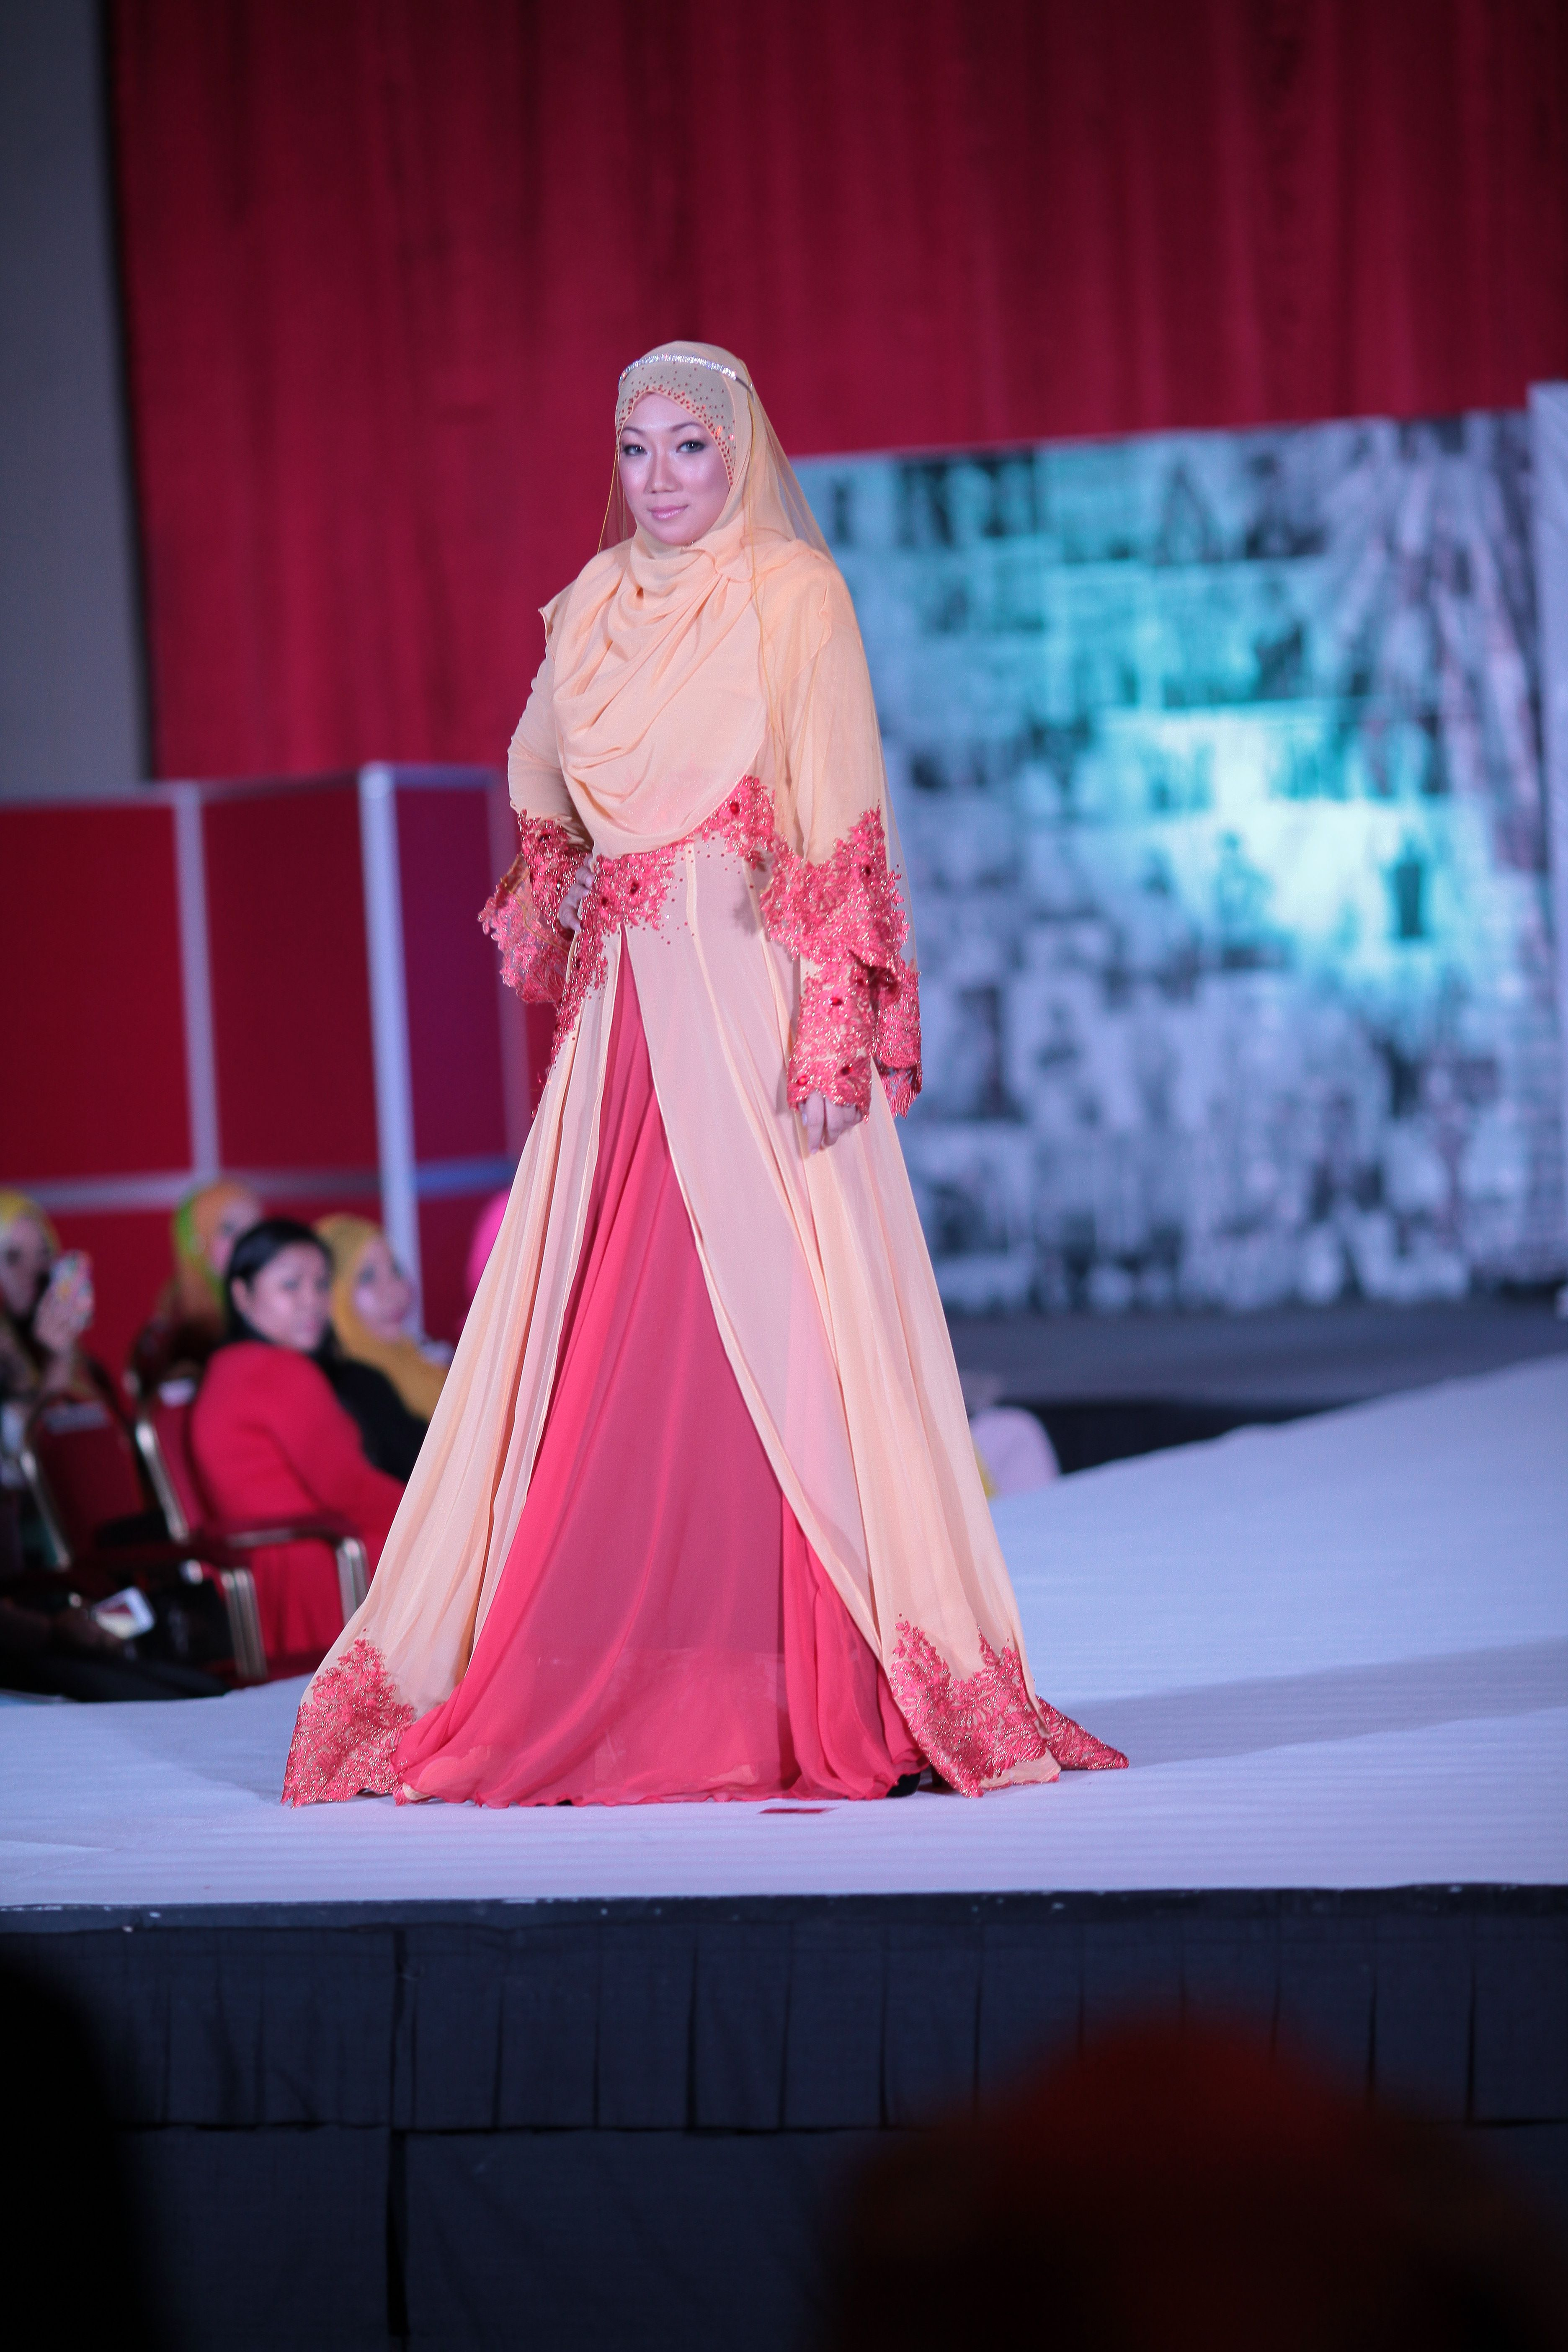 Eja Shahril Collections - Muslimah Wedding Dress | Moslema In Style ...